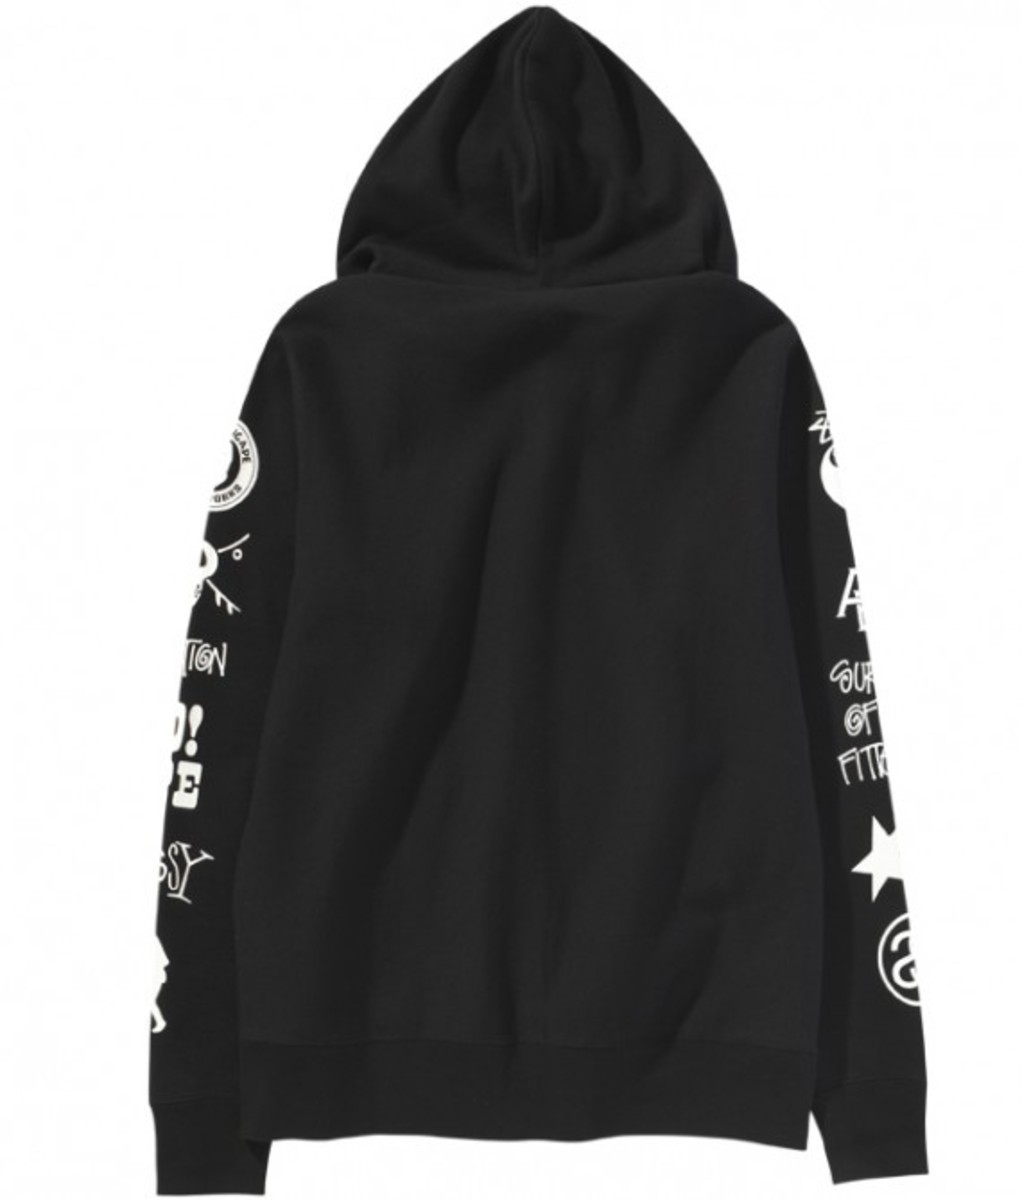 stussy-bape-survival-of-the-fittest-2-24